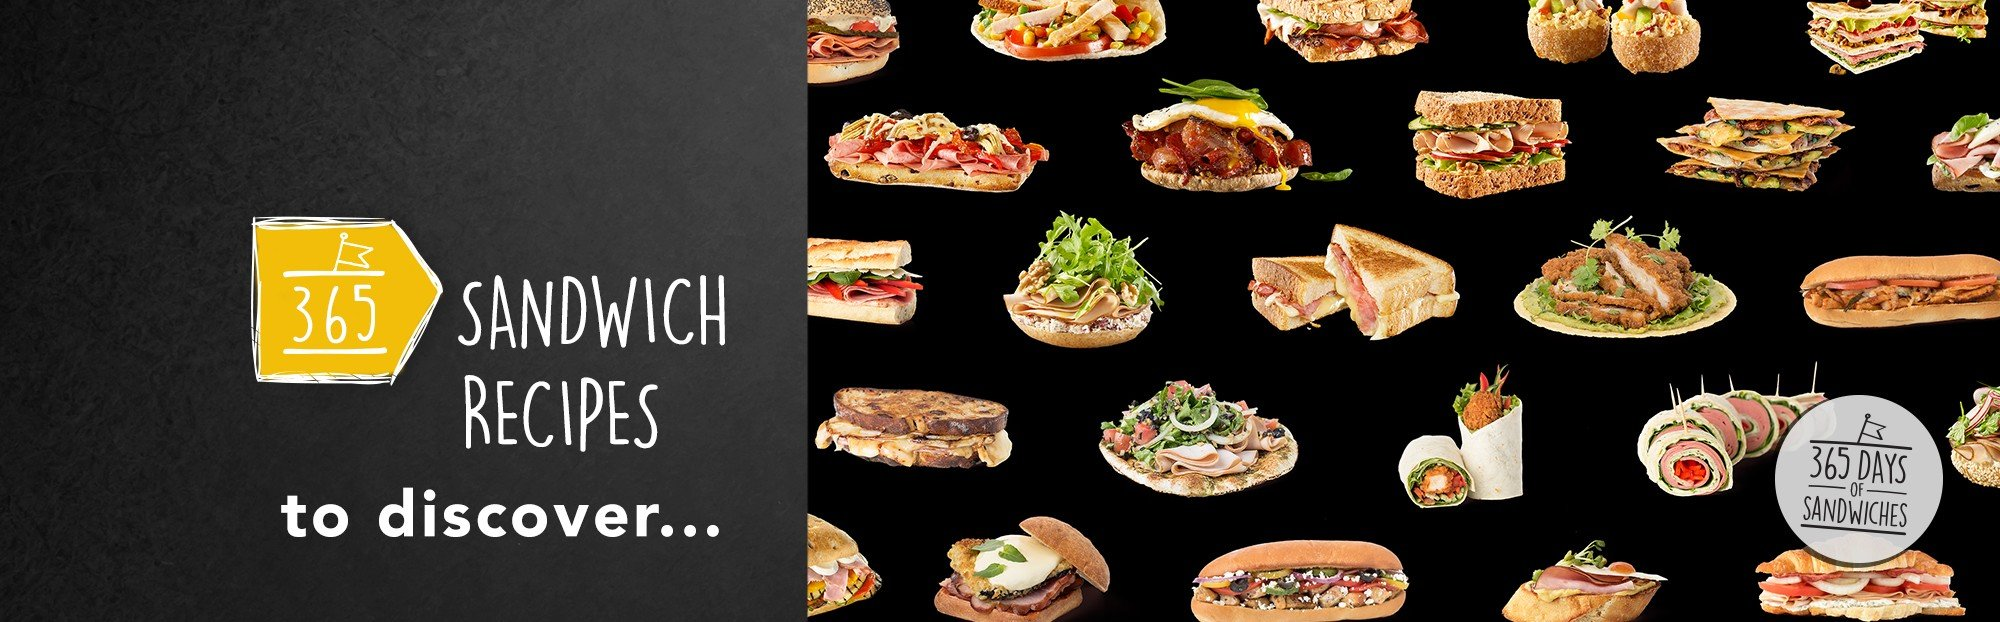 365 sandwich recipes to discover